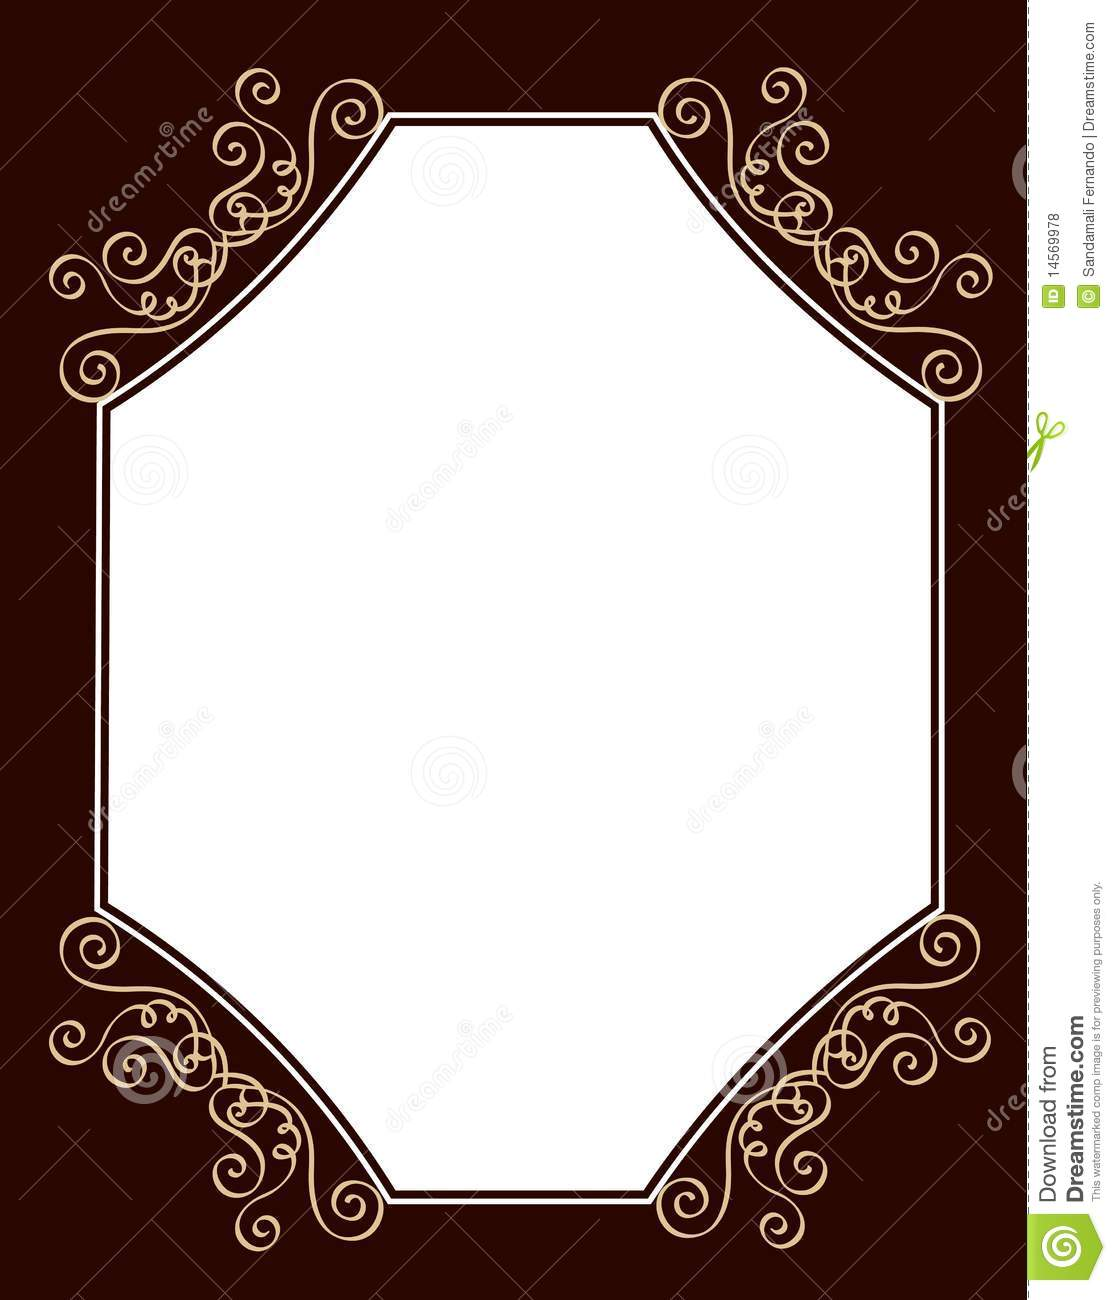 Wedding invitation template stock vector illustration of backdrop download wedding invitation template stock vector illustration of backdrop artistic 14569978 stopboris Gallery